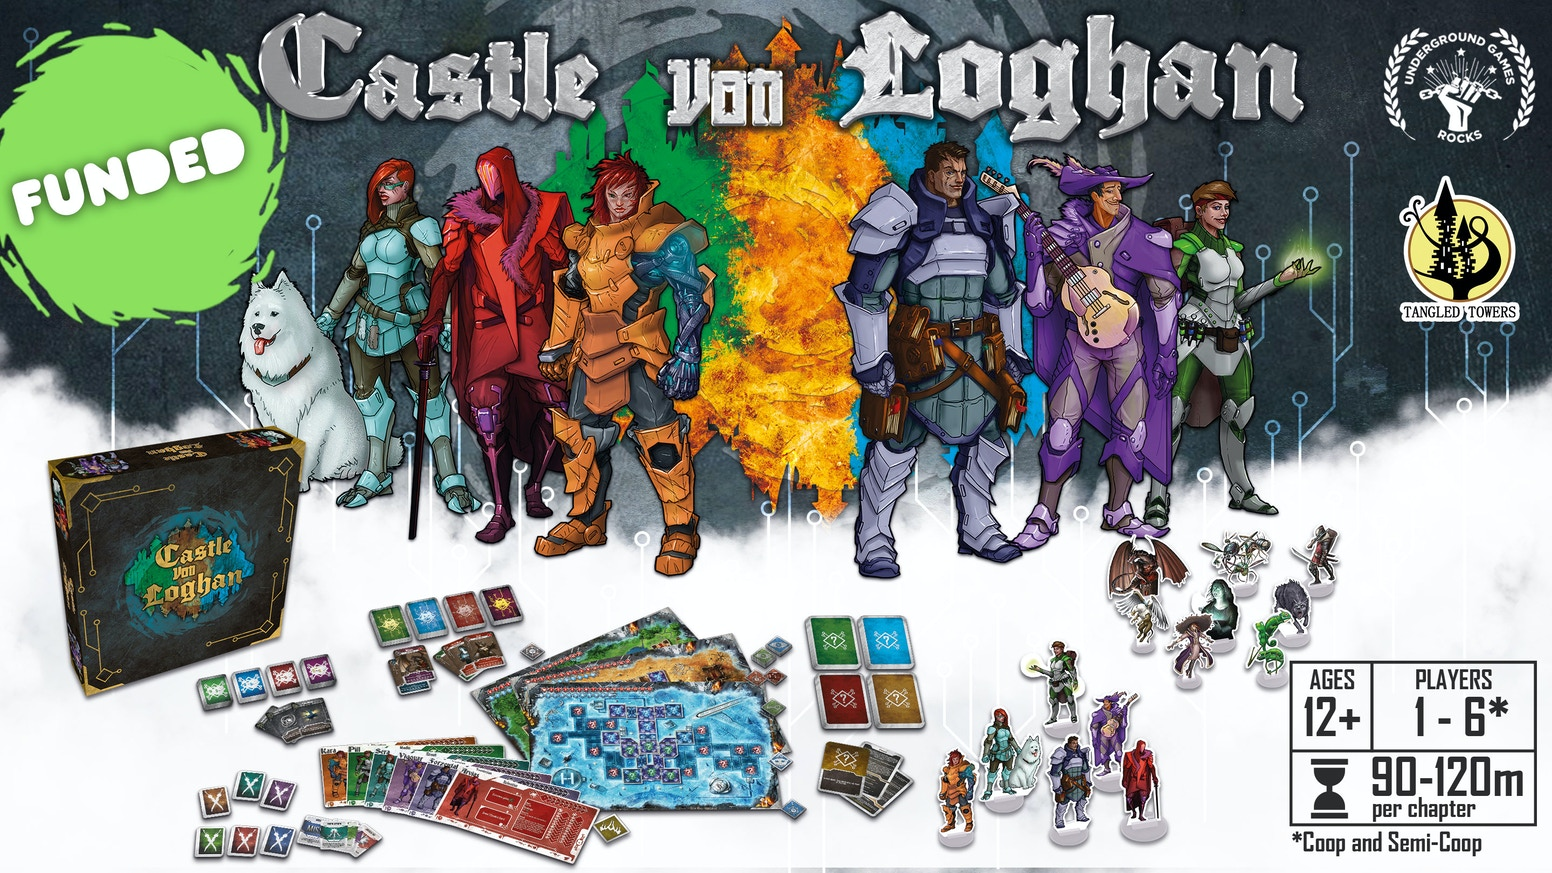 A 1 to 6 Players, time-travelling, competitive Co-op dungeon adventure with engaging stories, diceless combat and morphing game boards. Get it now!